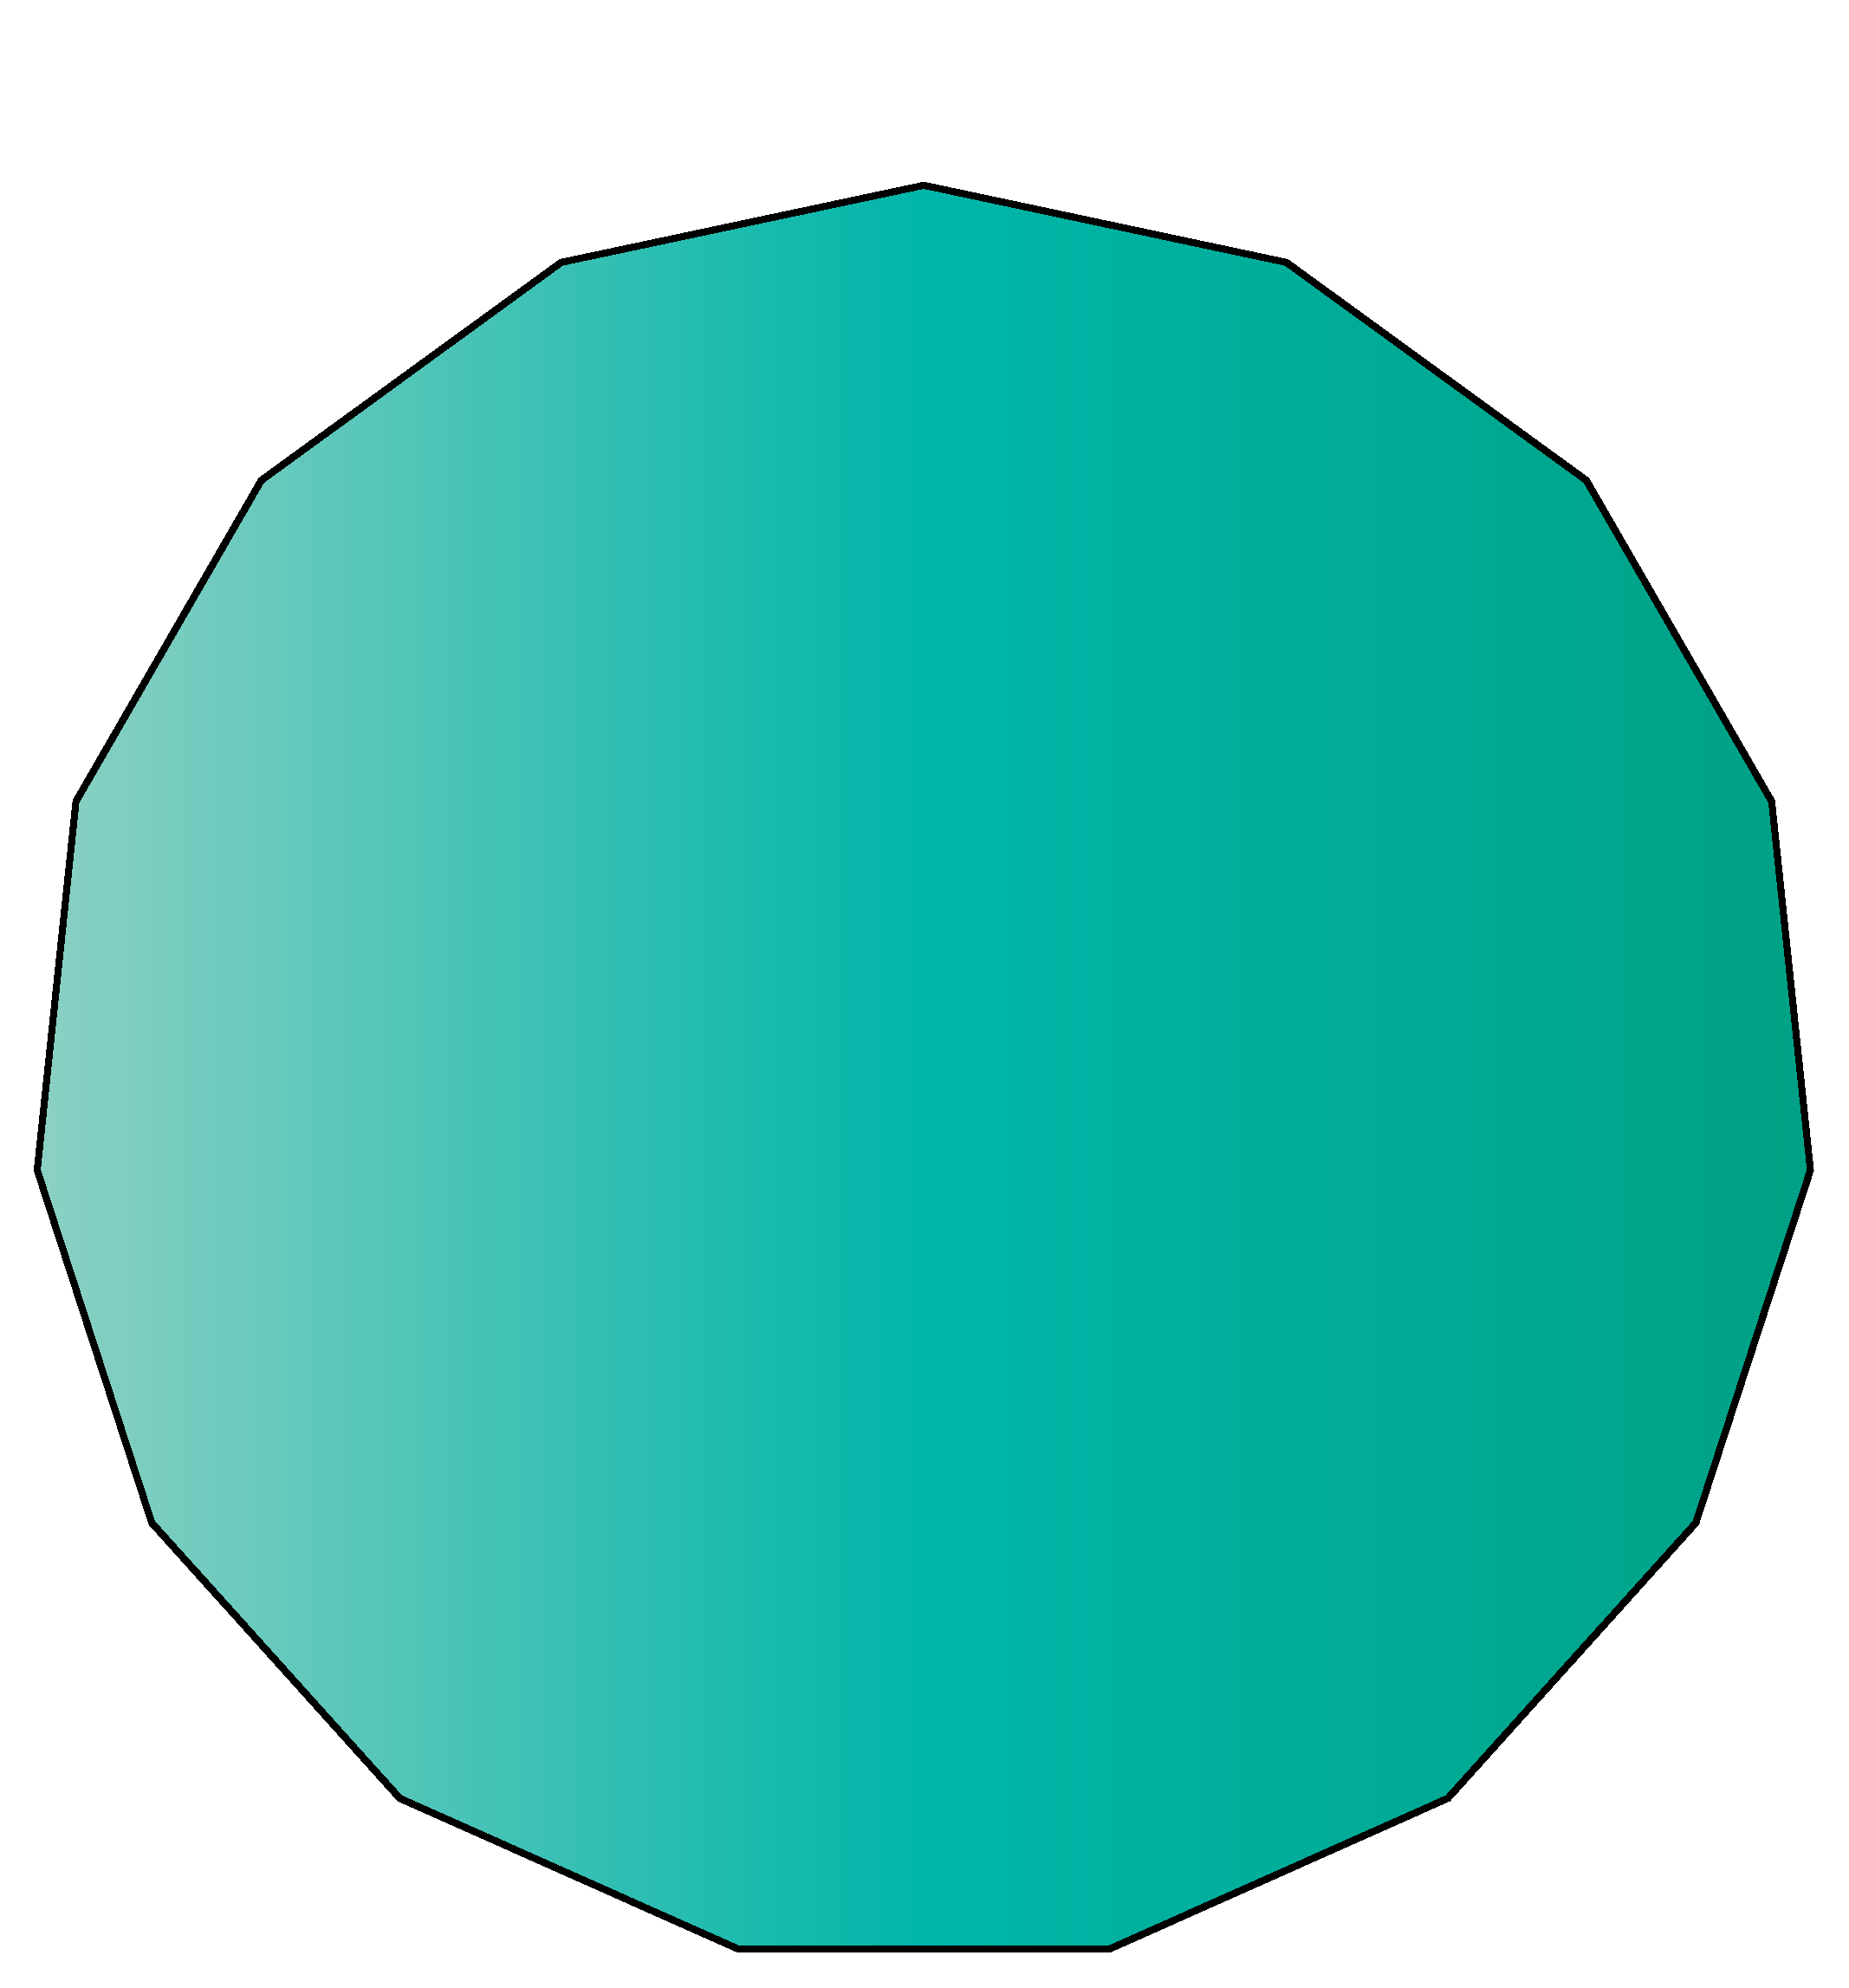 15 sided polygon